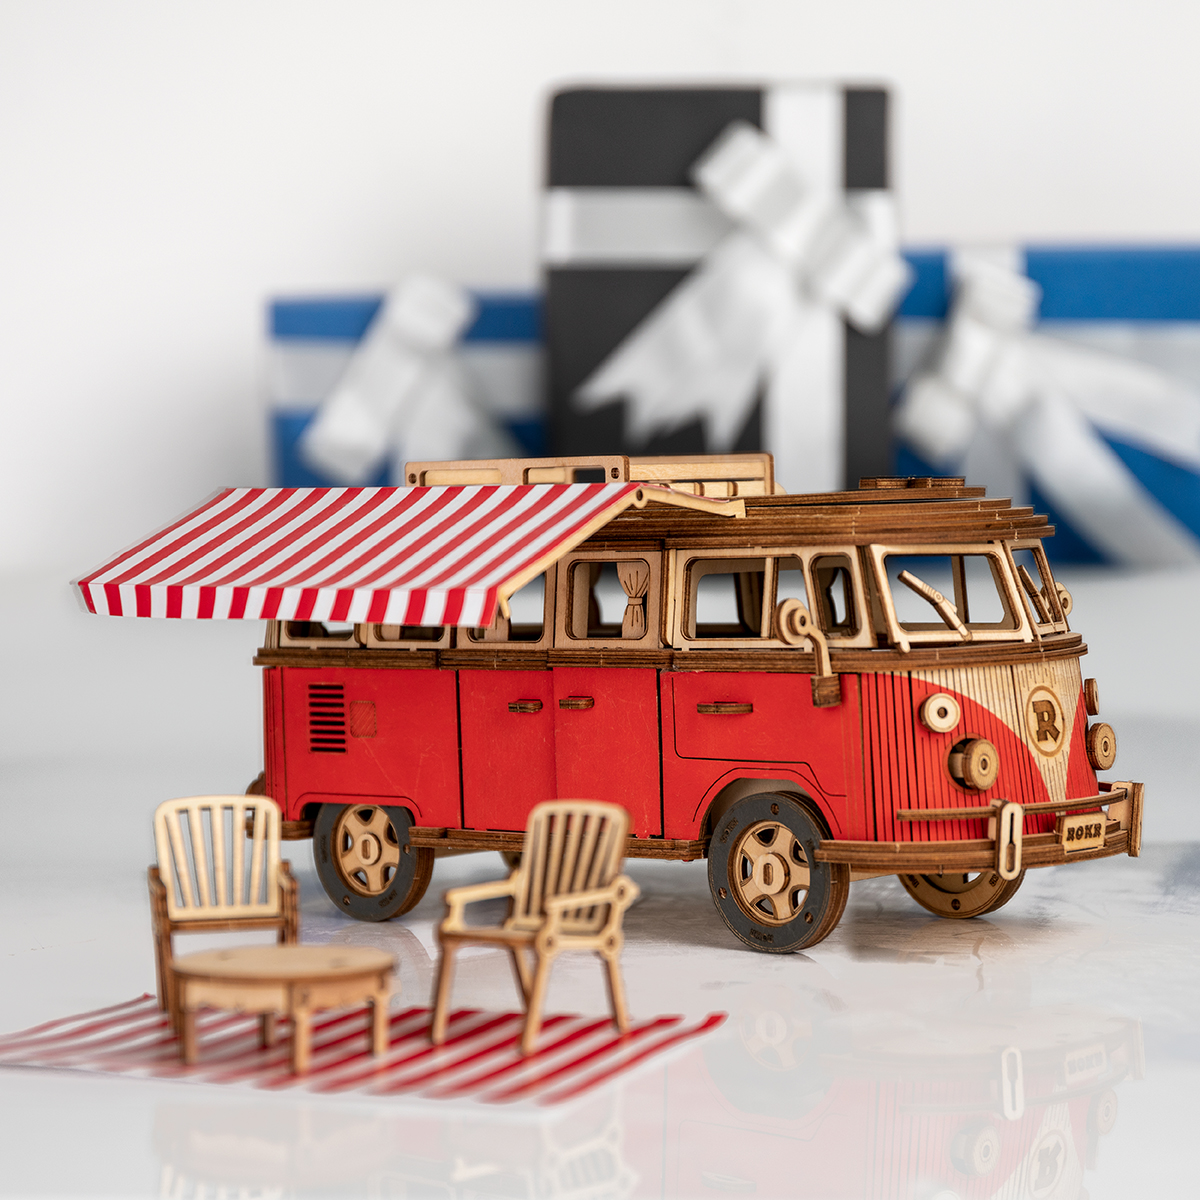 Vehicle - Robotime 242pcs DIY 3D Camper Van Wooden Recreational Vehicle Puzzle Game Assembly Car Toy Gift